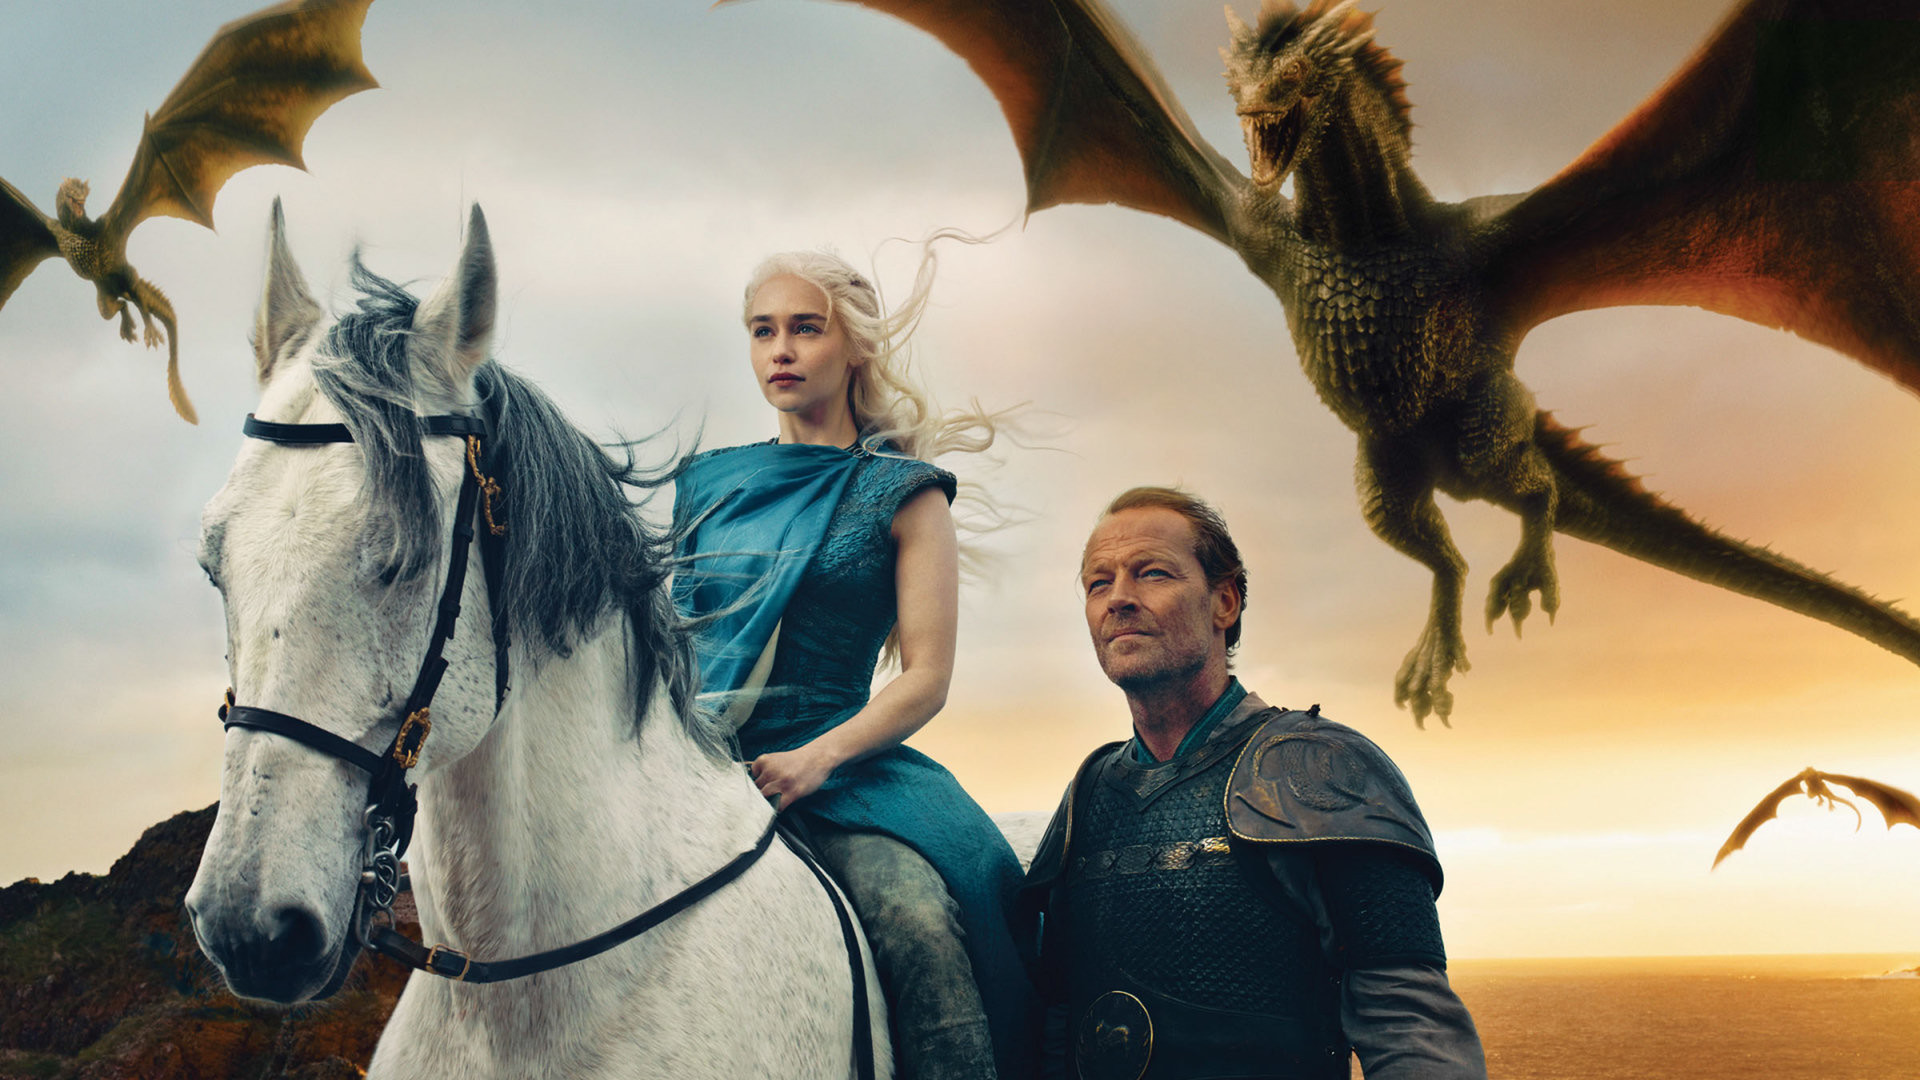 Game of Thrones - the most binge worthy tv shows of 2017